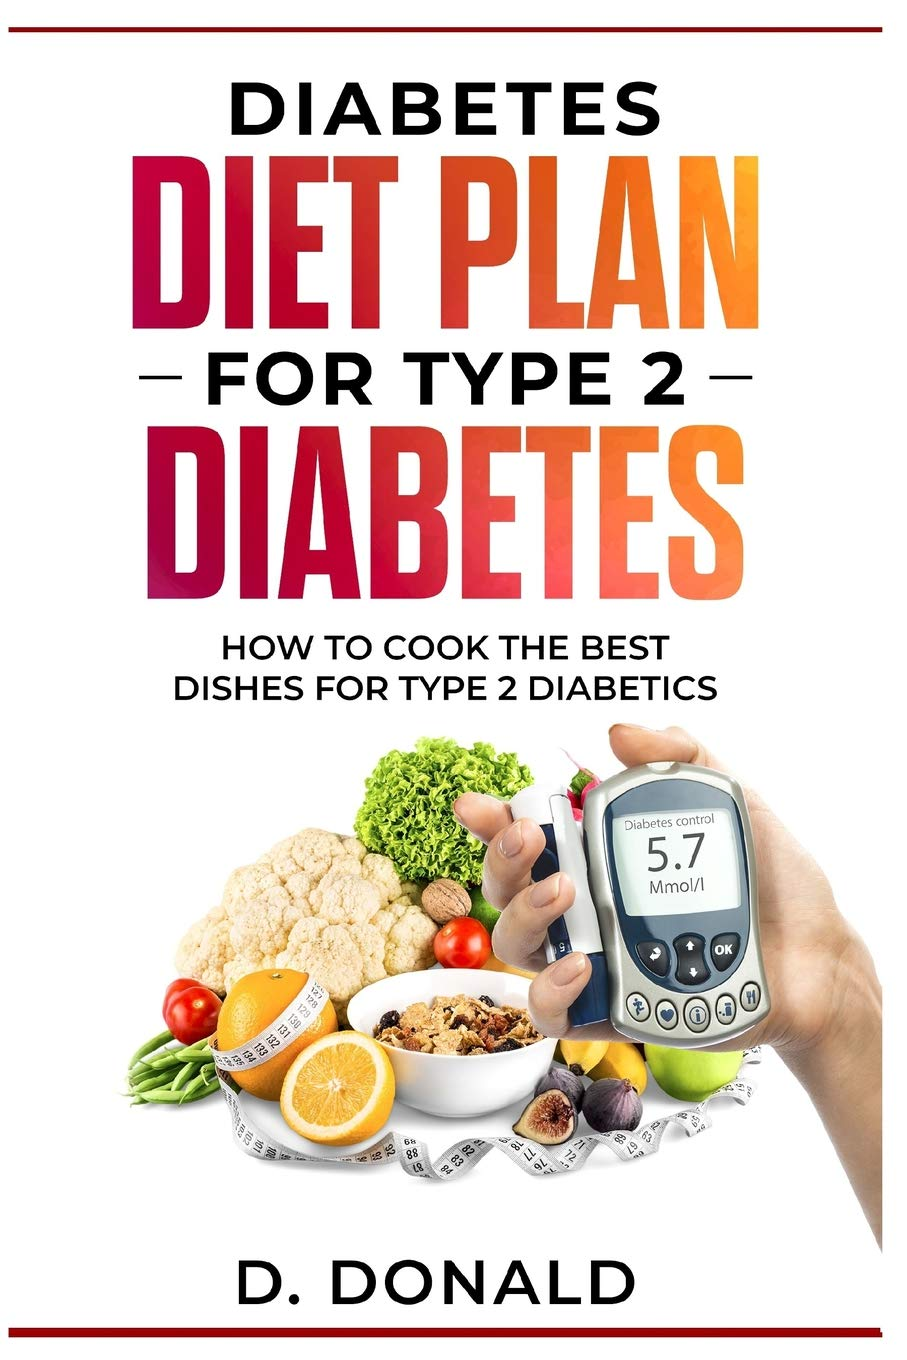 tpe 2 diabetes diet